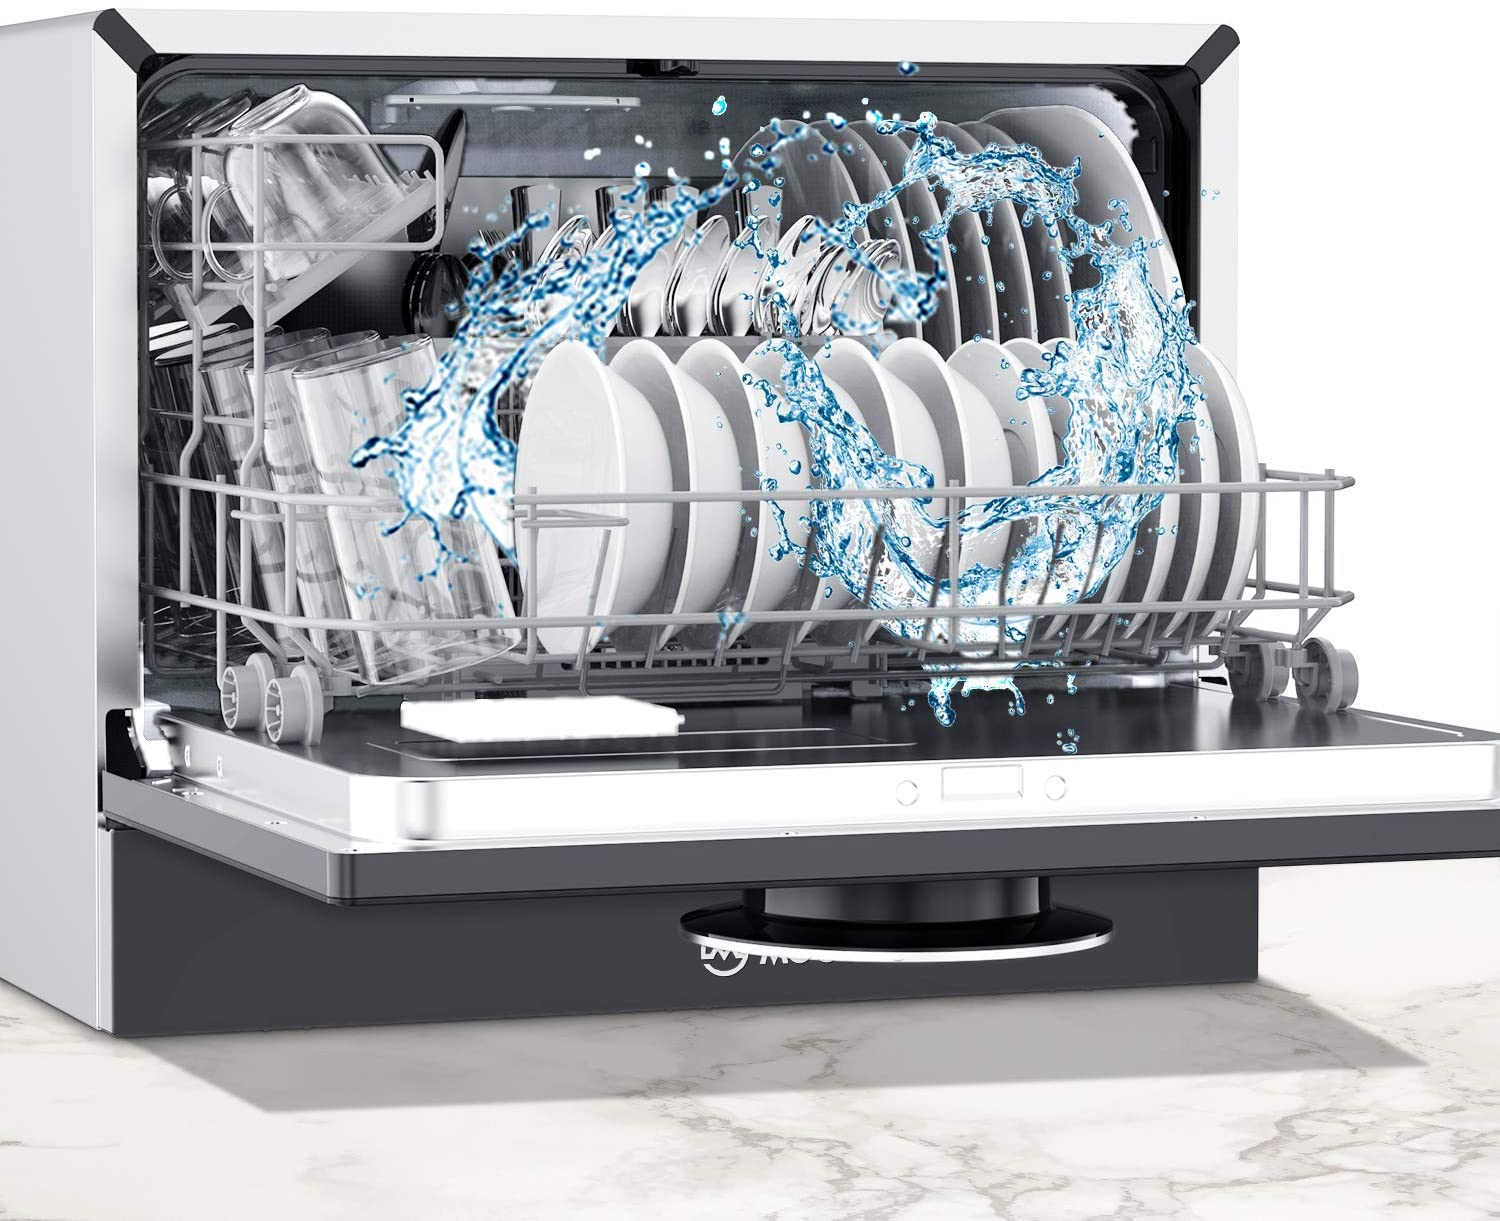 22 Inch Countertop Dishwasher with 5 Washing Programs MX30